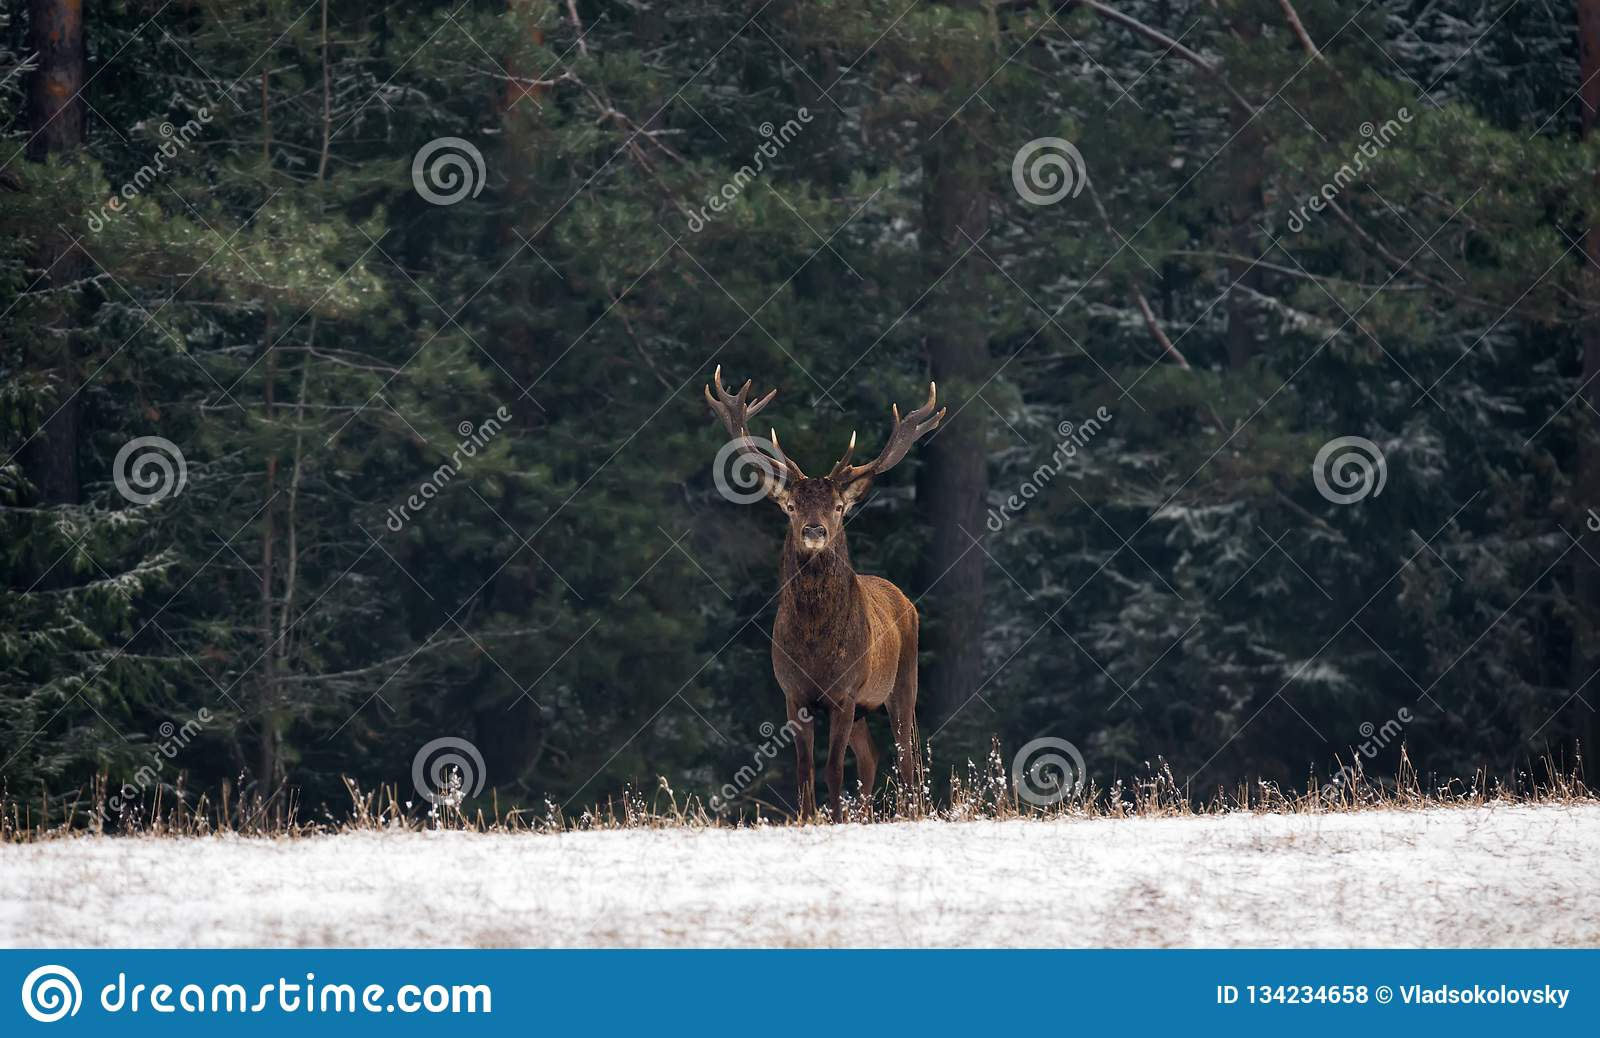 Graceful Deer Stag An Adult Male With Beautiful Horns Against The Backdrop Of Green Winter Pine Forest, With Snow-Covered Fo